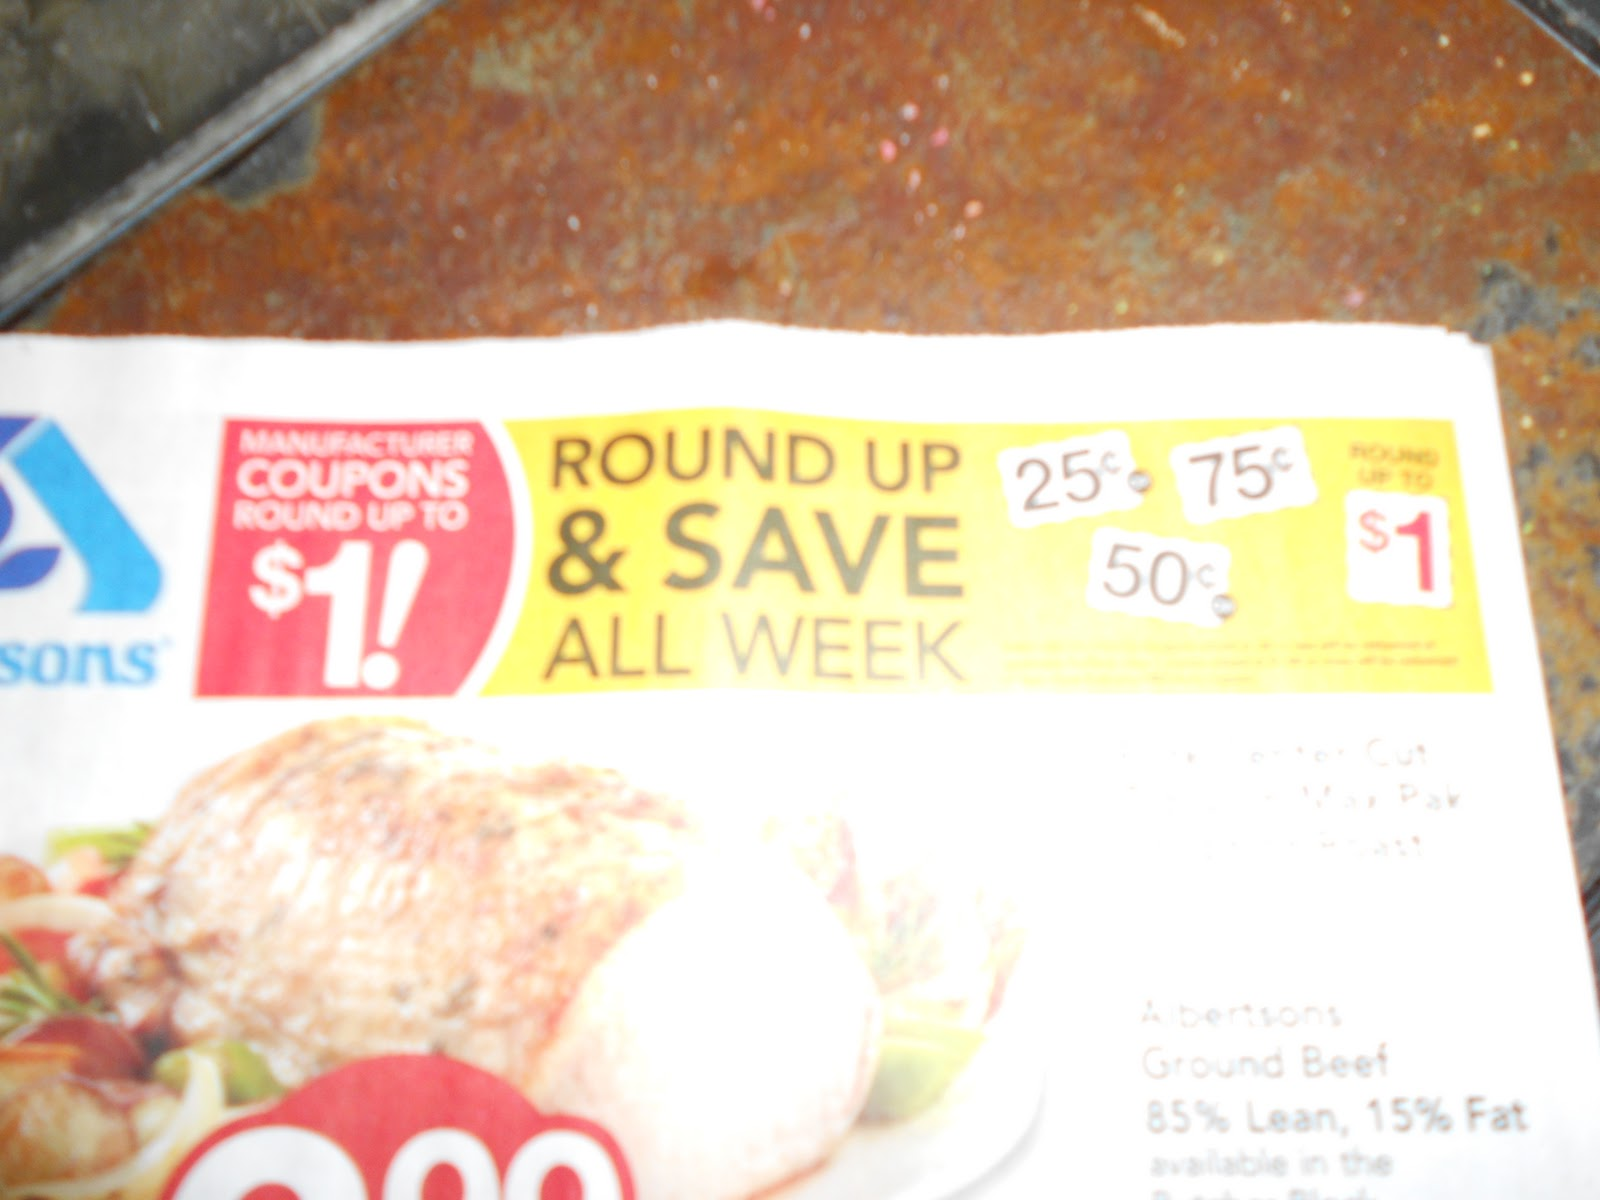 Albertsons coupons this week